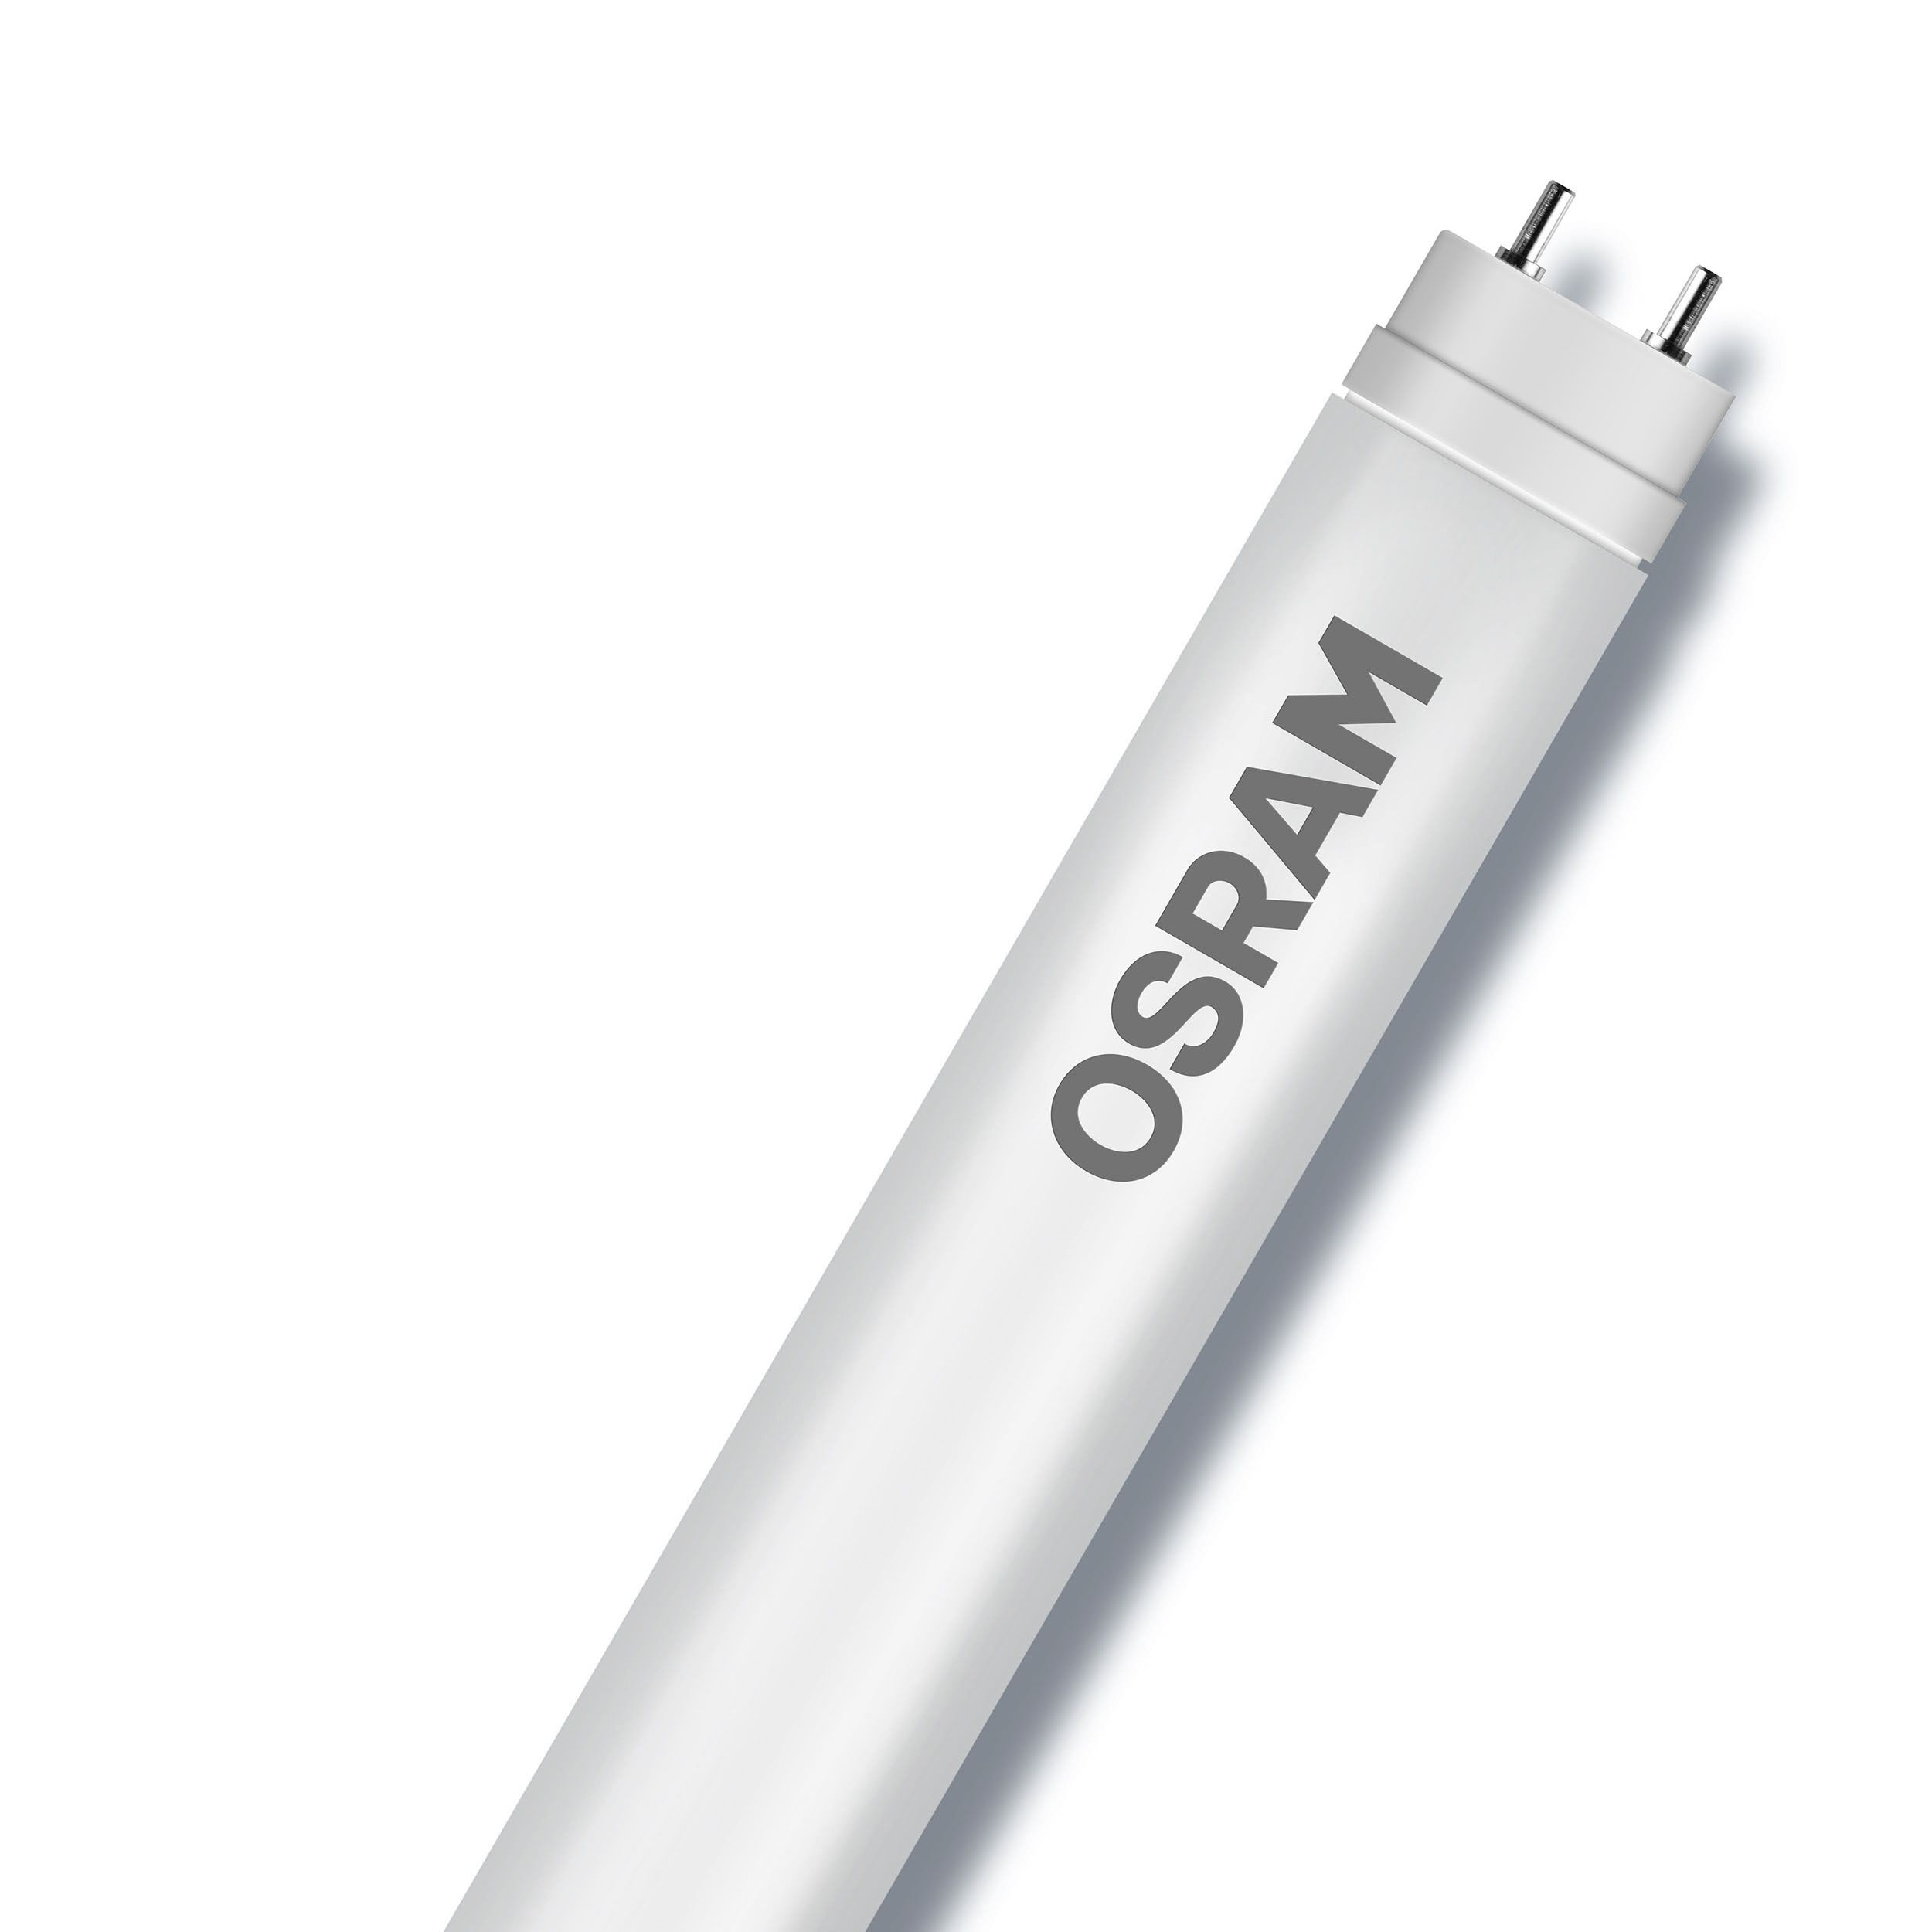 Лампа светодиодная Osram SubstiTUBE Pure ST8P G13 21W/840 4000K 1800Lm 1500mm